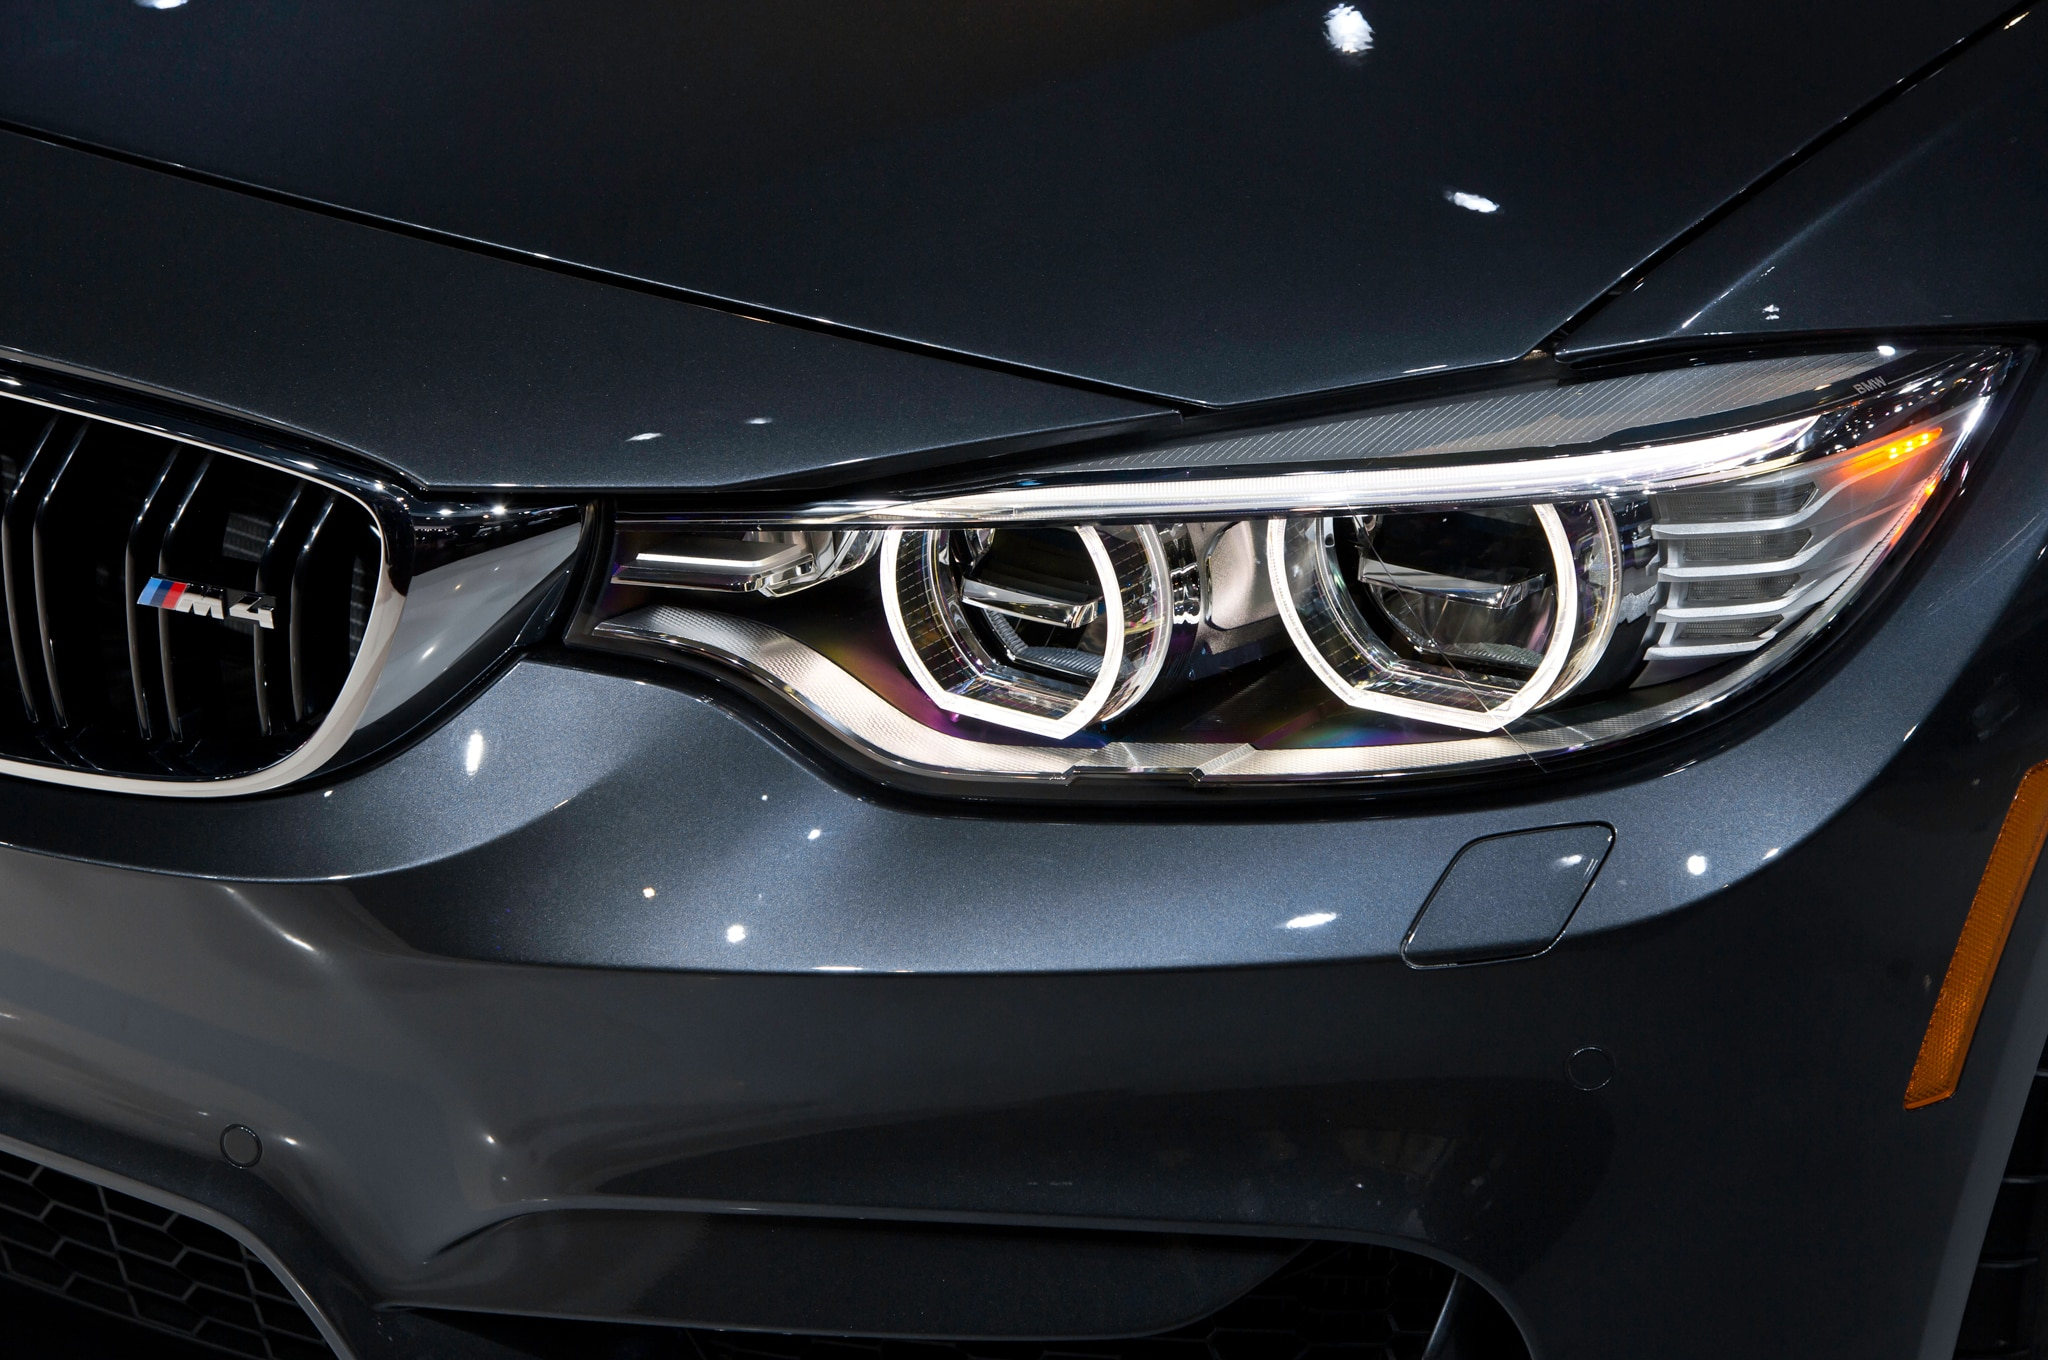 diy bmw and views broken name size showthread attachment headlight angel opening forums updated eye ring headlights led img kb with